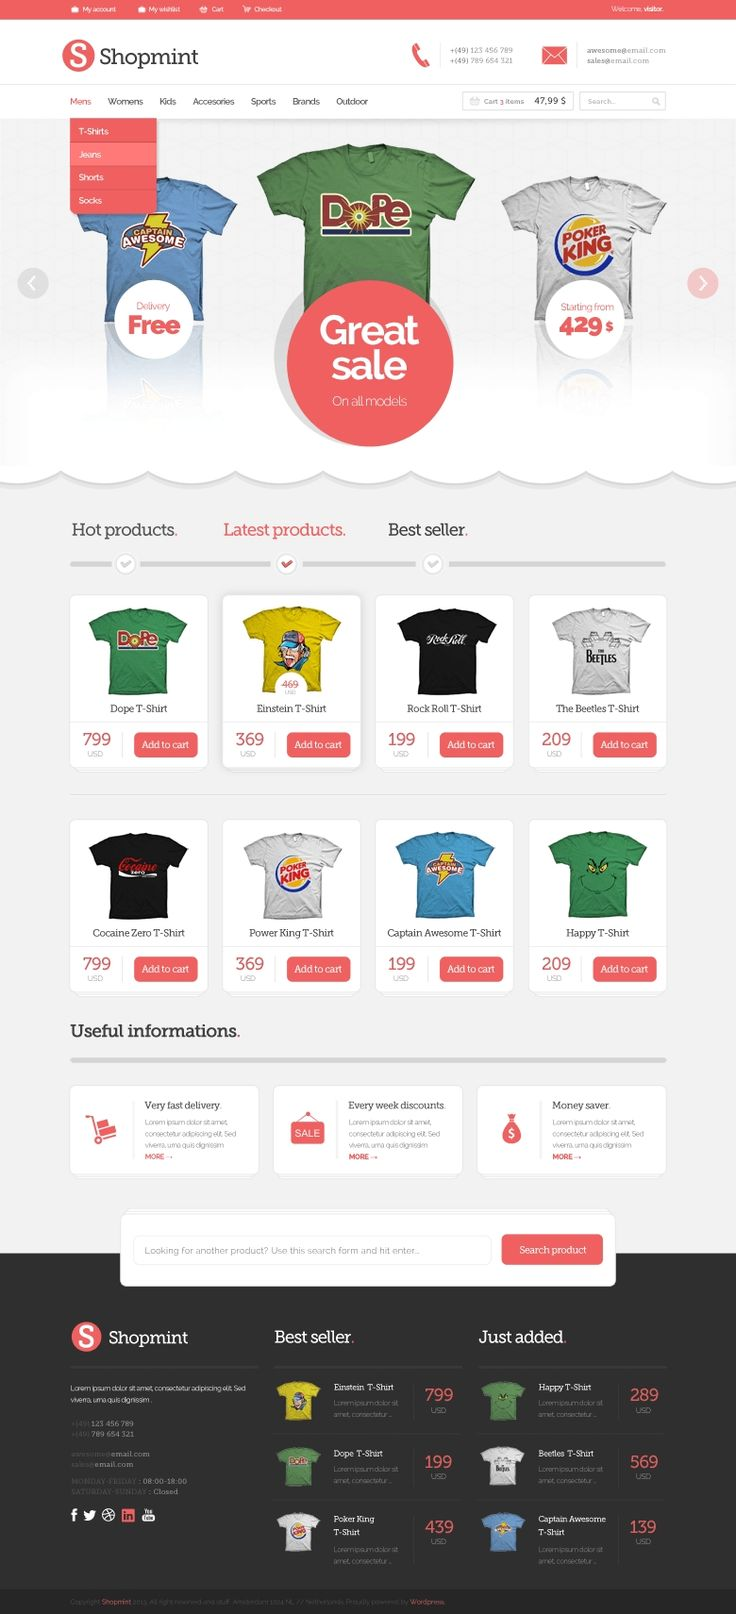 118 best images about • E-Commerce Web • on Pinterest | Ecommerce ...